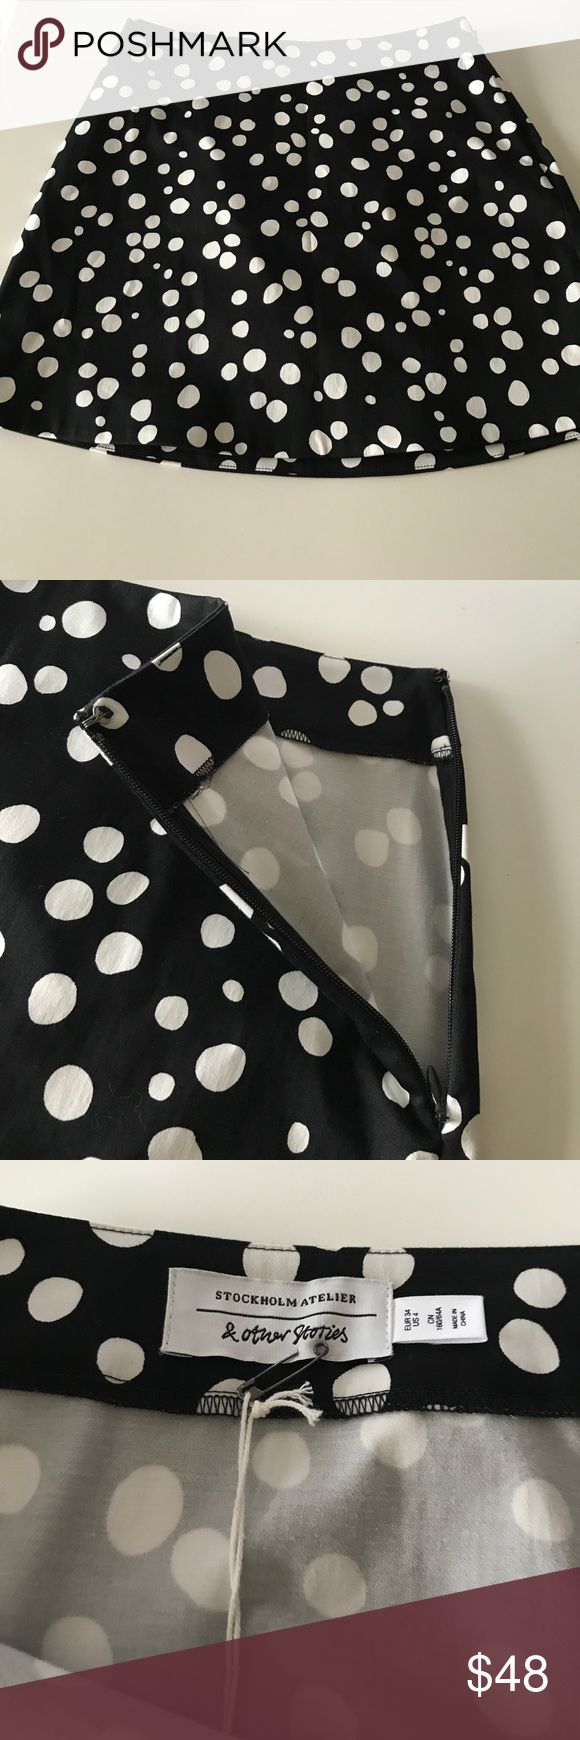 NWT: & other stories 🦋 New with tags & other stories. Size 4. Cute black-and-white polkadot pattern. No inner lining. Size is it and clasp closure. Can be worn by itself or with leggings. Very cute and fun piece🦋🦋 & other stories Skirts Mini